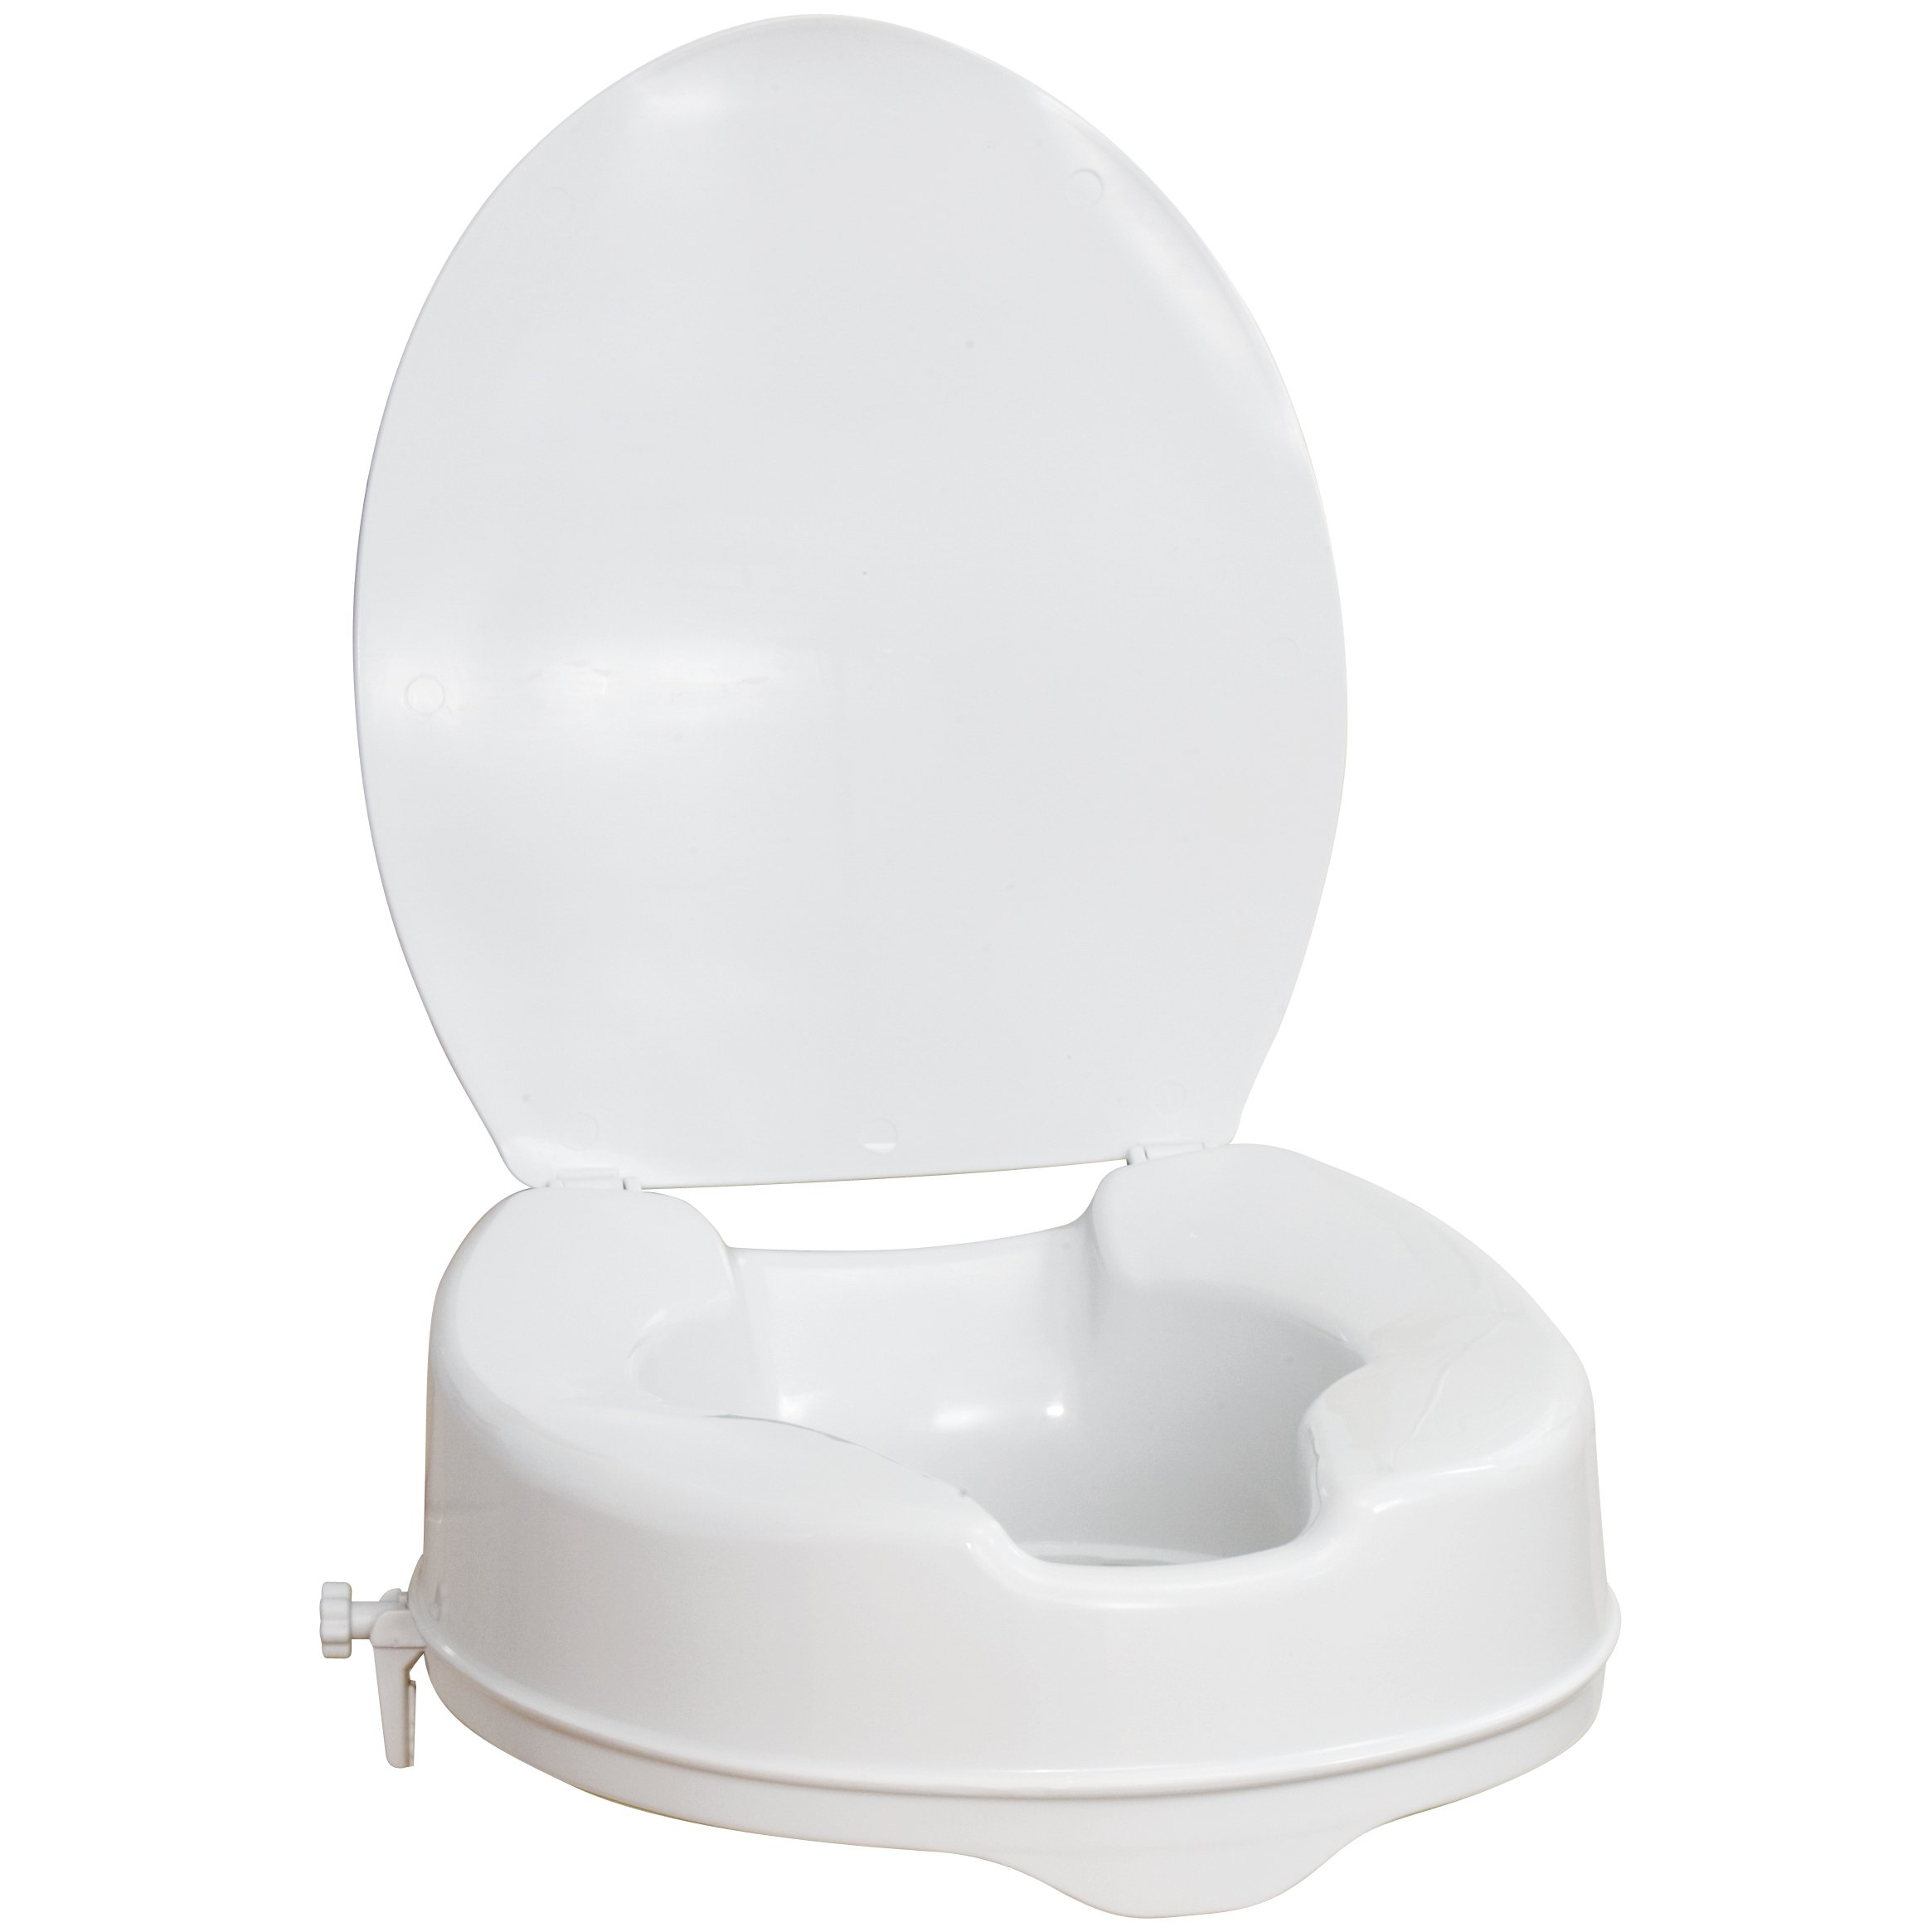 AquaSense Raised Toilet Seat with Lid, White, 4-Inches